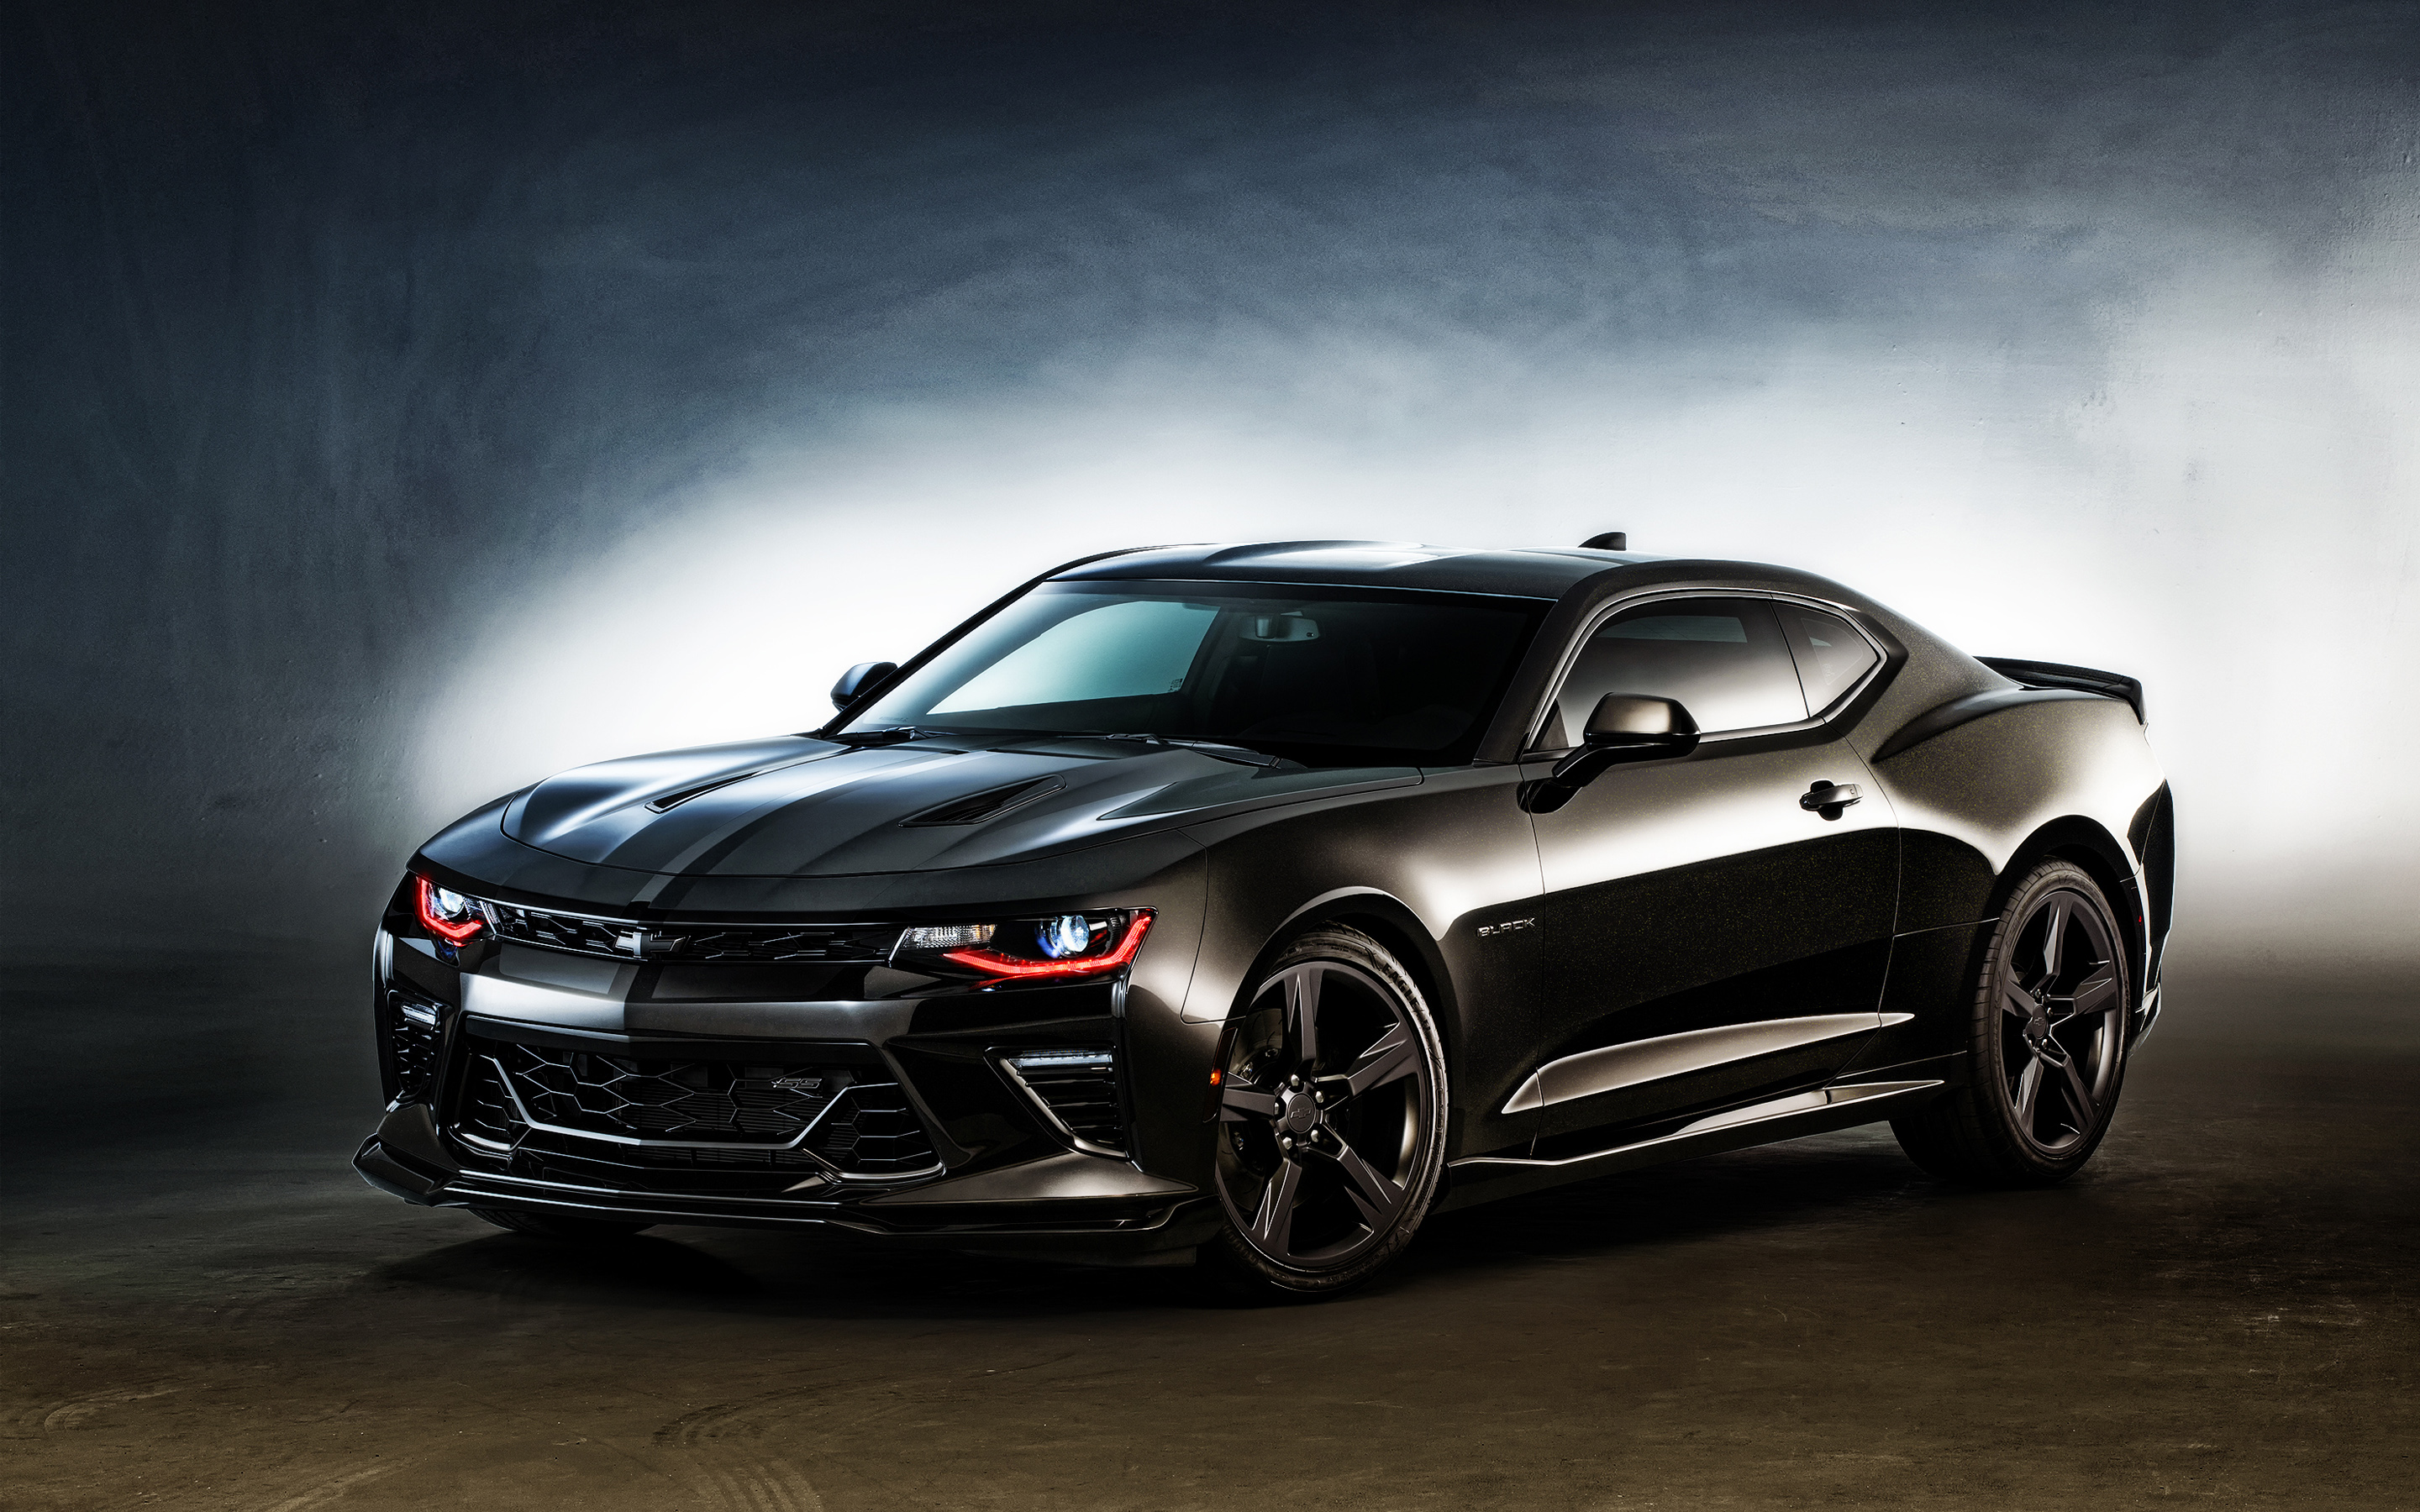 2016 Chevrolet Camaro Black Wallpaper HD Car Wallpapers 2880x1800